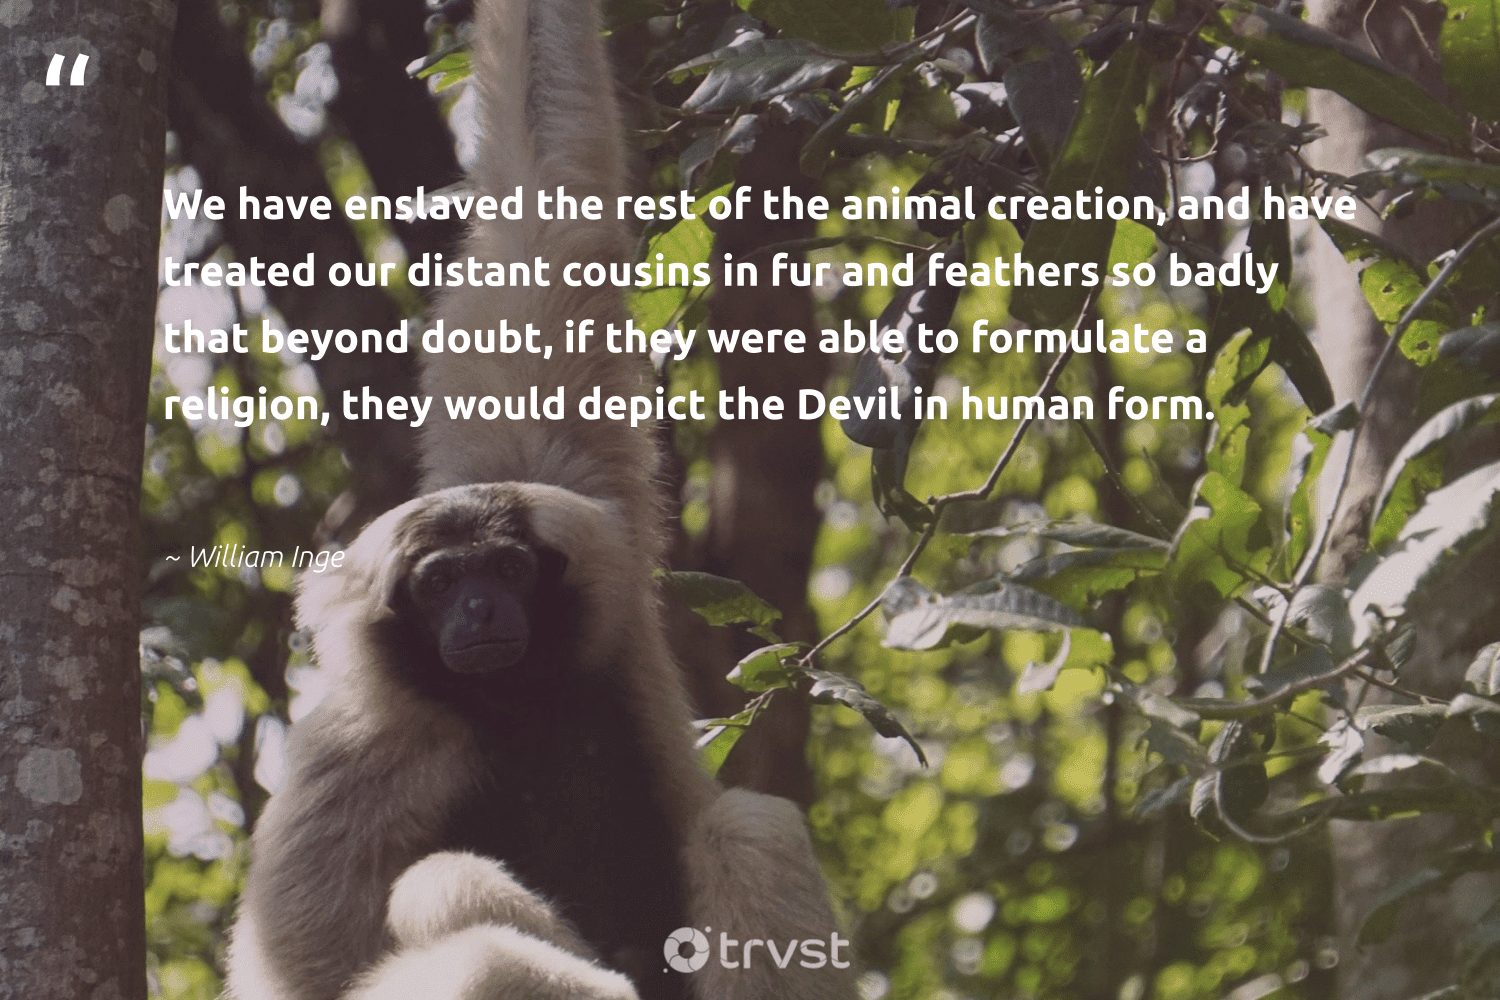 """""""We have enslaved the rest of the animal creation, and have treated our distant cousins in fur and feathers so badly that beyond doubt, if they were able to formulate a religion, they would depict the Devil in human form.""""  - William Inge #trvst #quotes #wildlife #animal #animallovers #flowers #parrot #socialchange #animals #insect #biology #gogreen"""